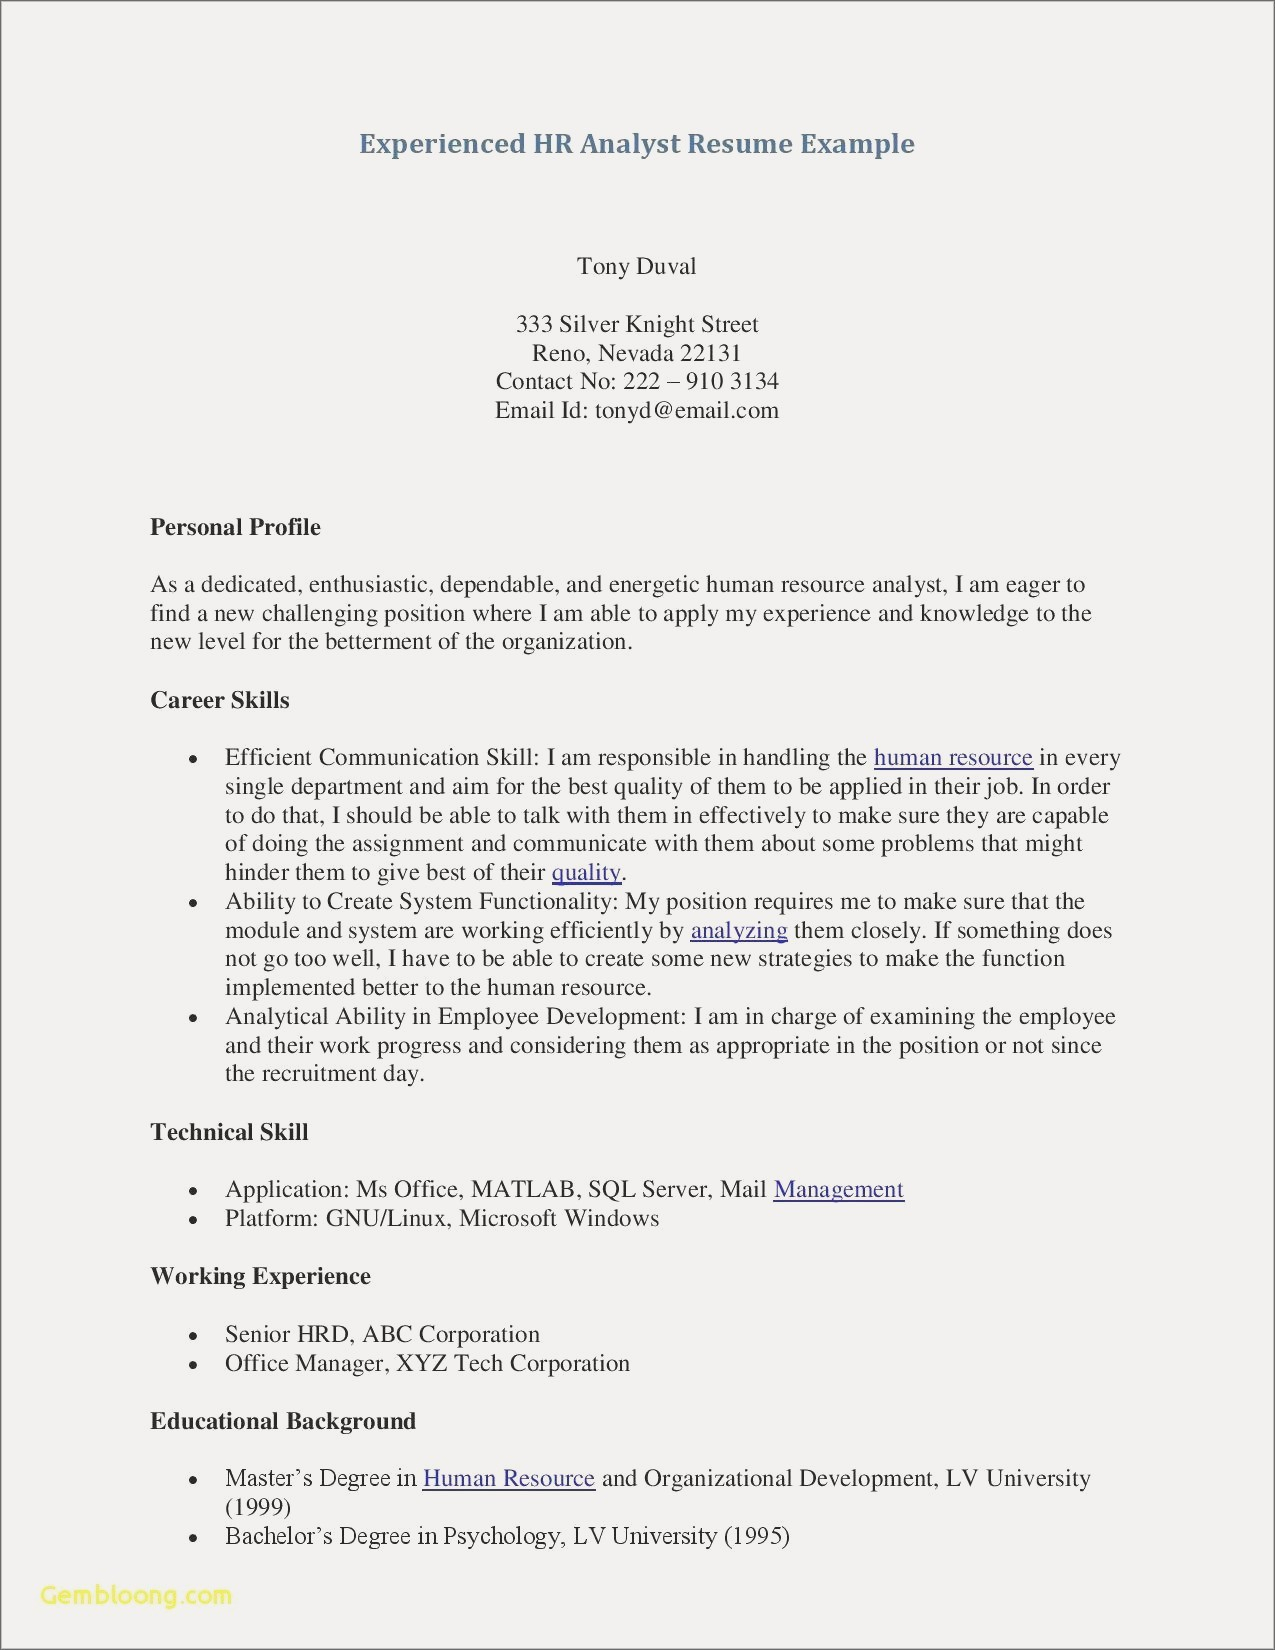 Office Manager Description for Resume - Resume Fice Manager